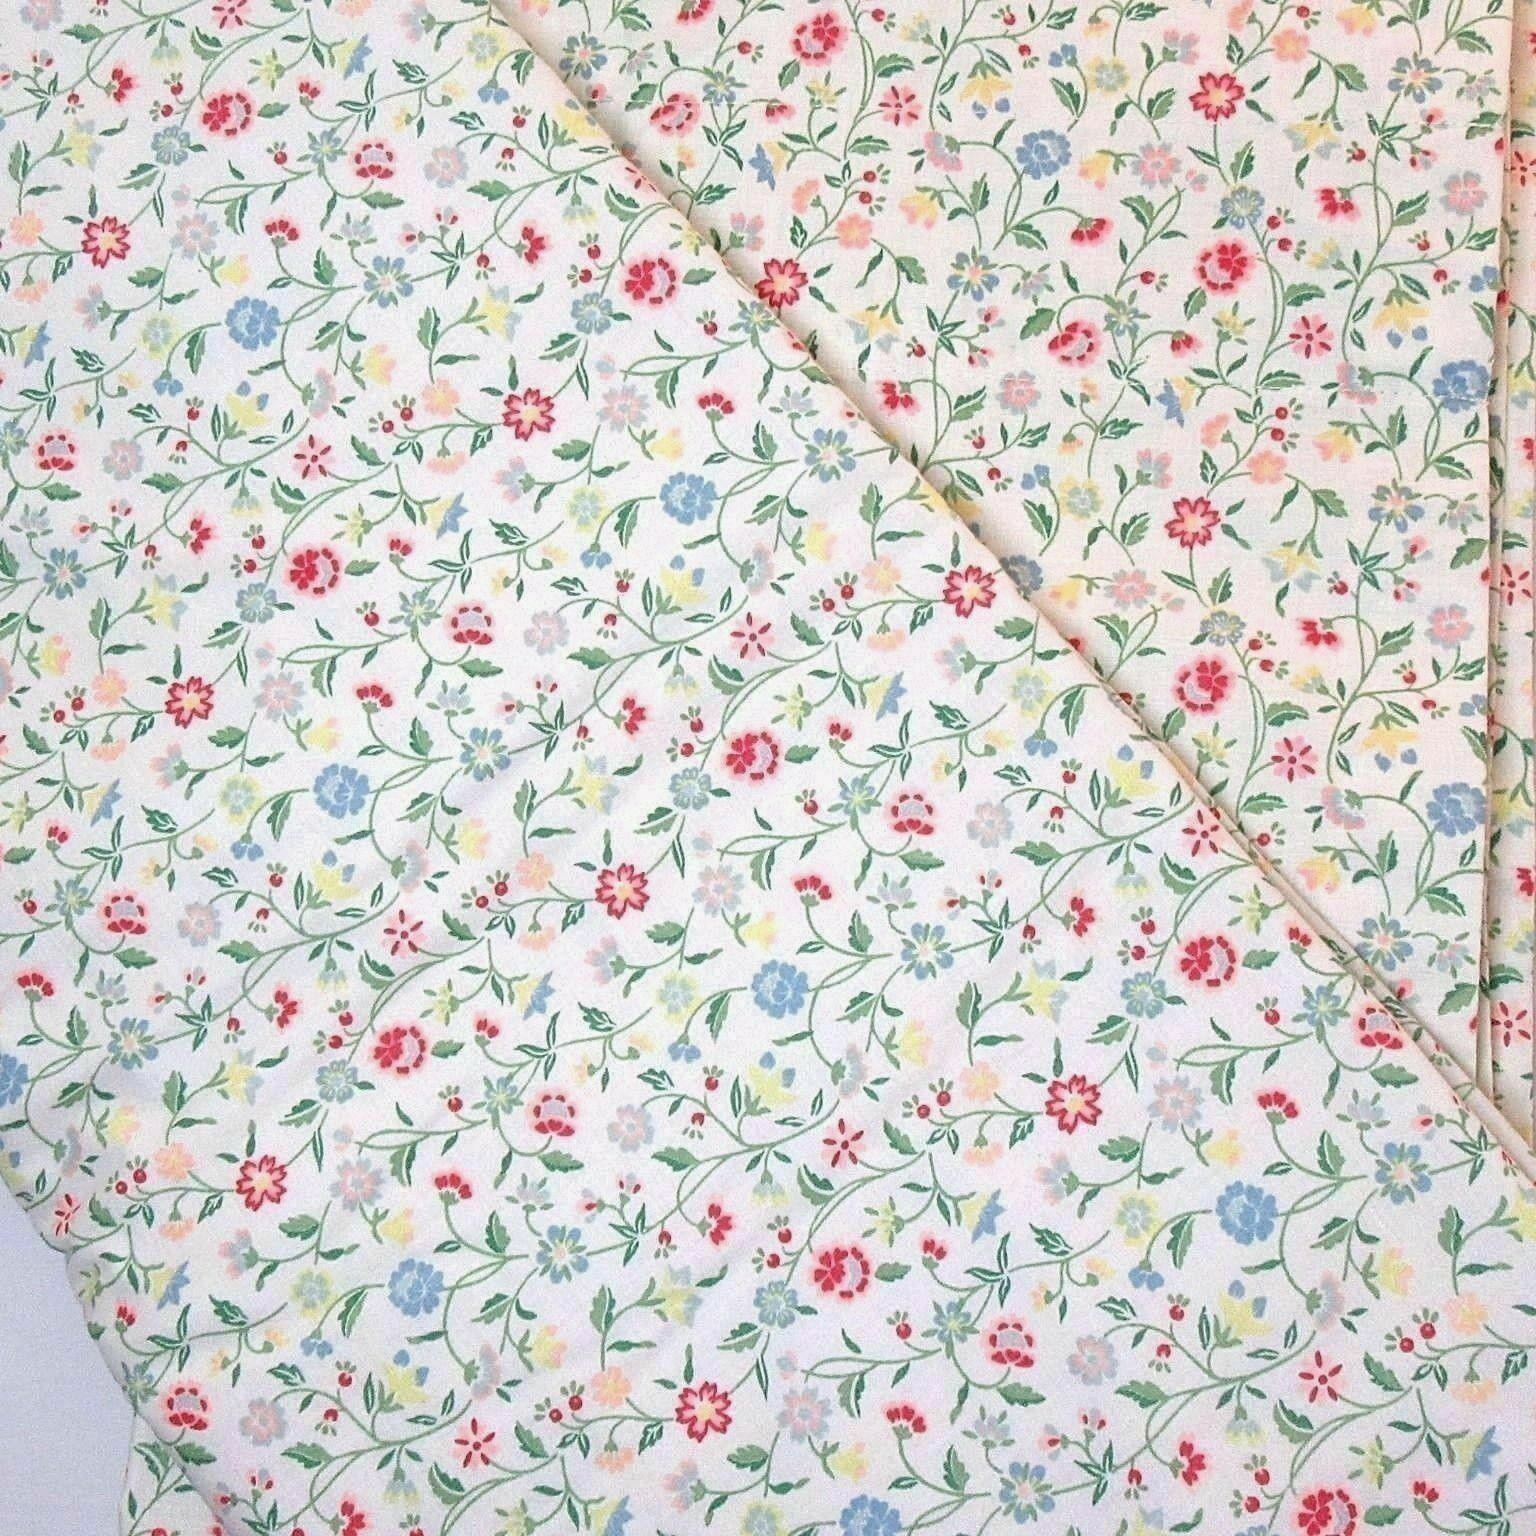 Primary image for Waverly Matilda Floral Multi 2-PC 100 x 92 Lined Drapery Panel Set(s)